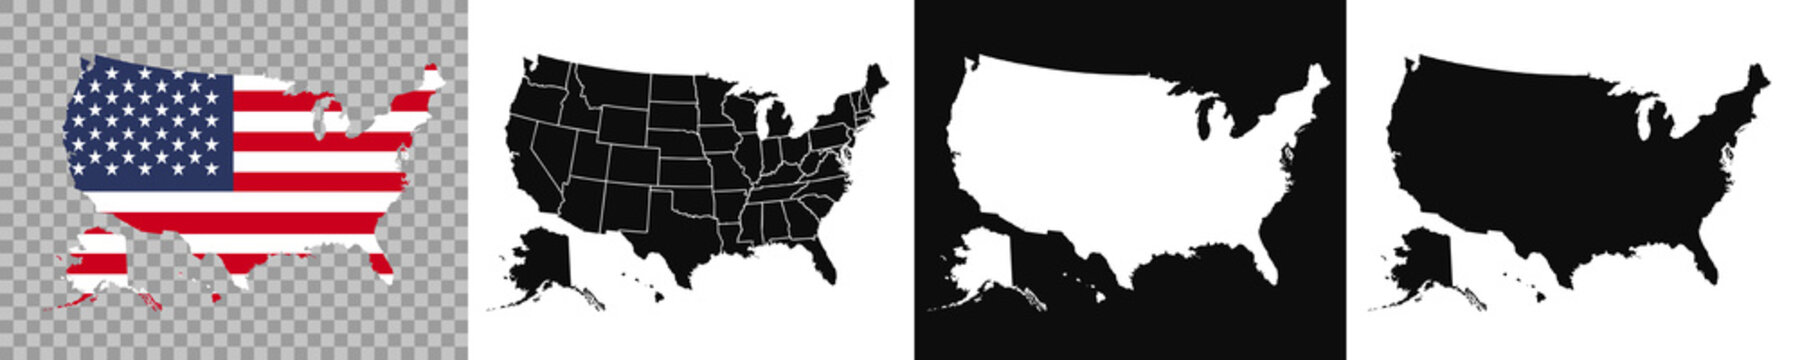 United States of America map. USA map with and without states isolated and on flag background – stock vector